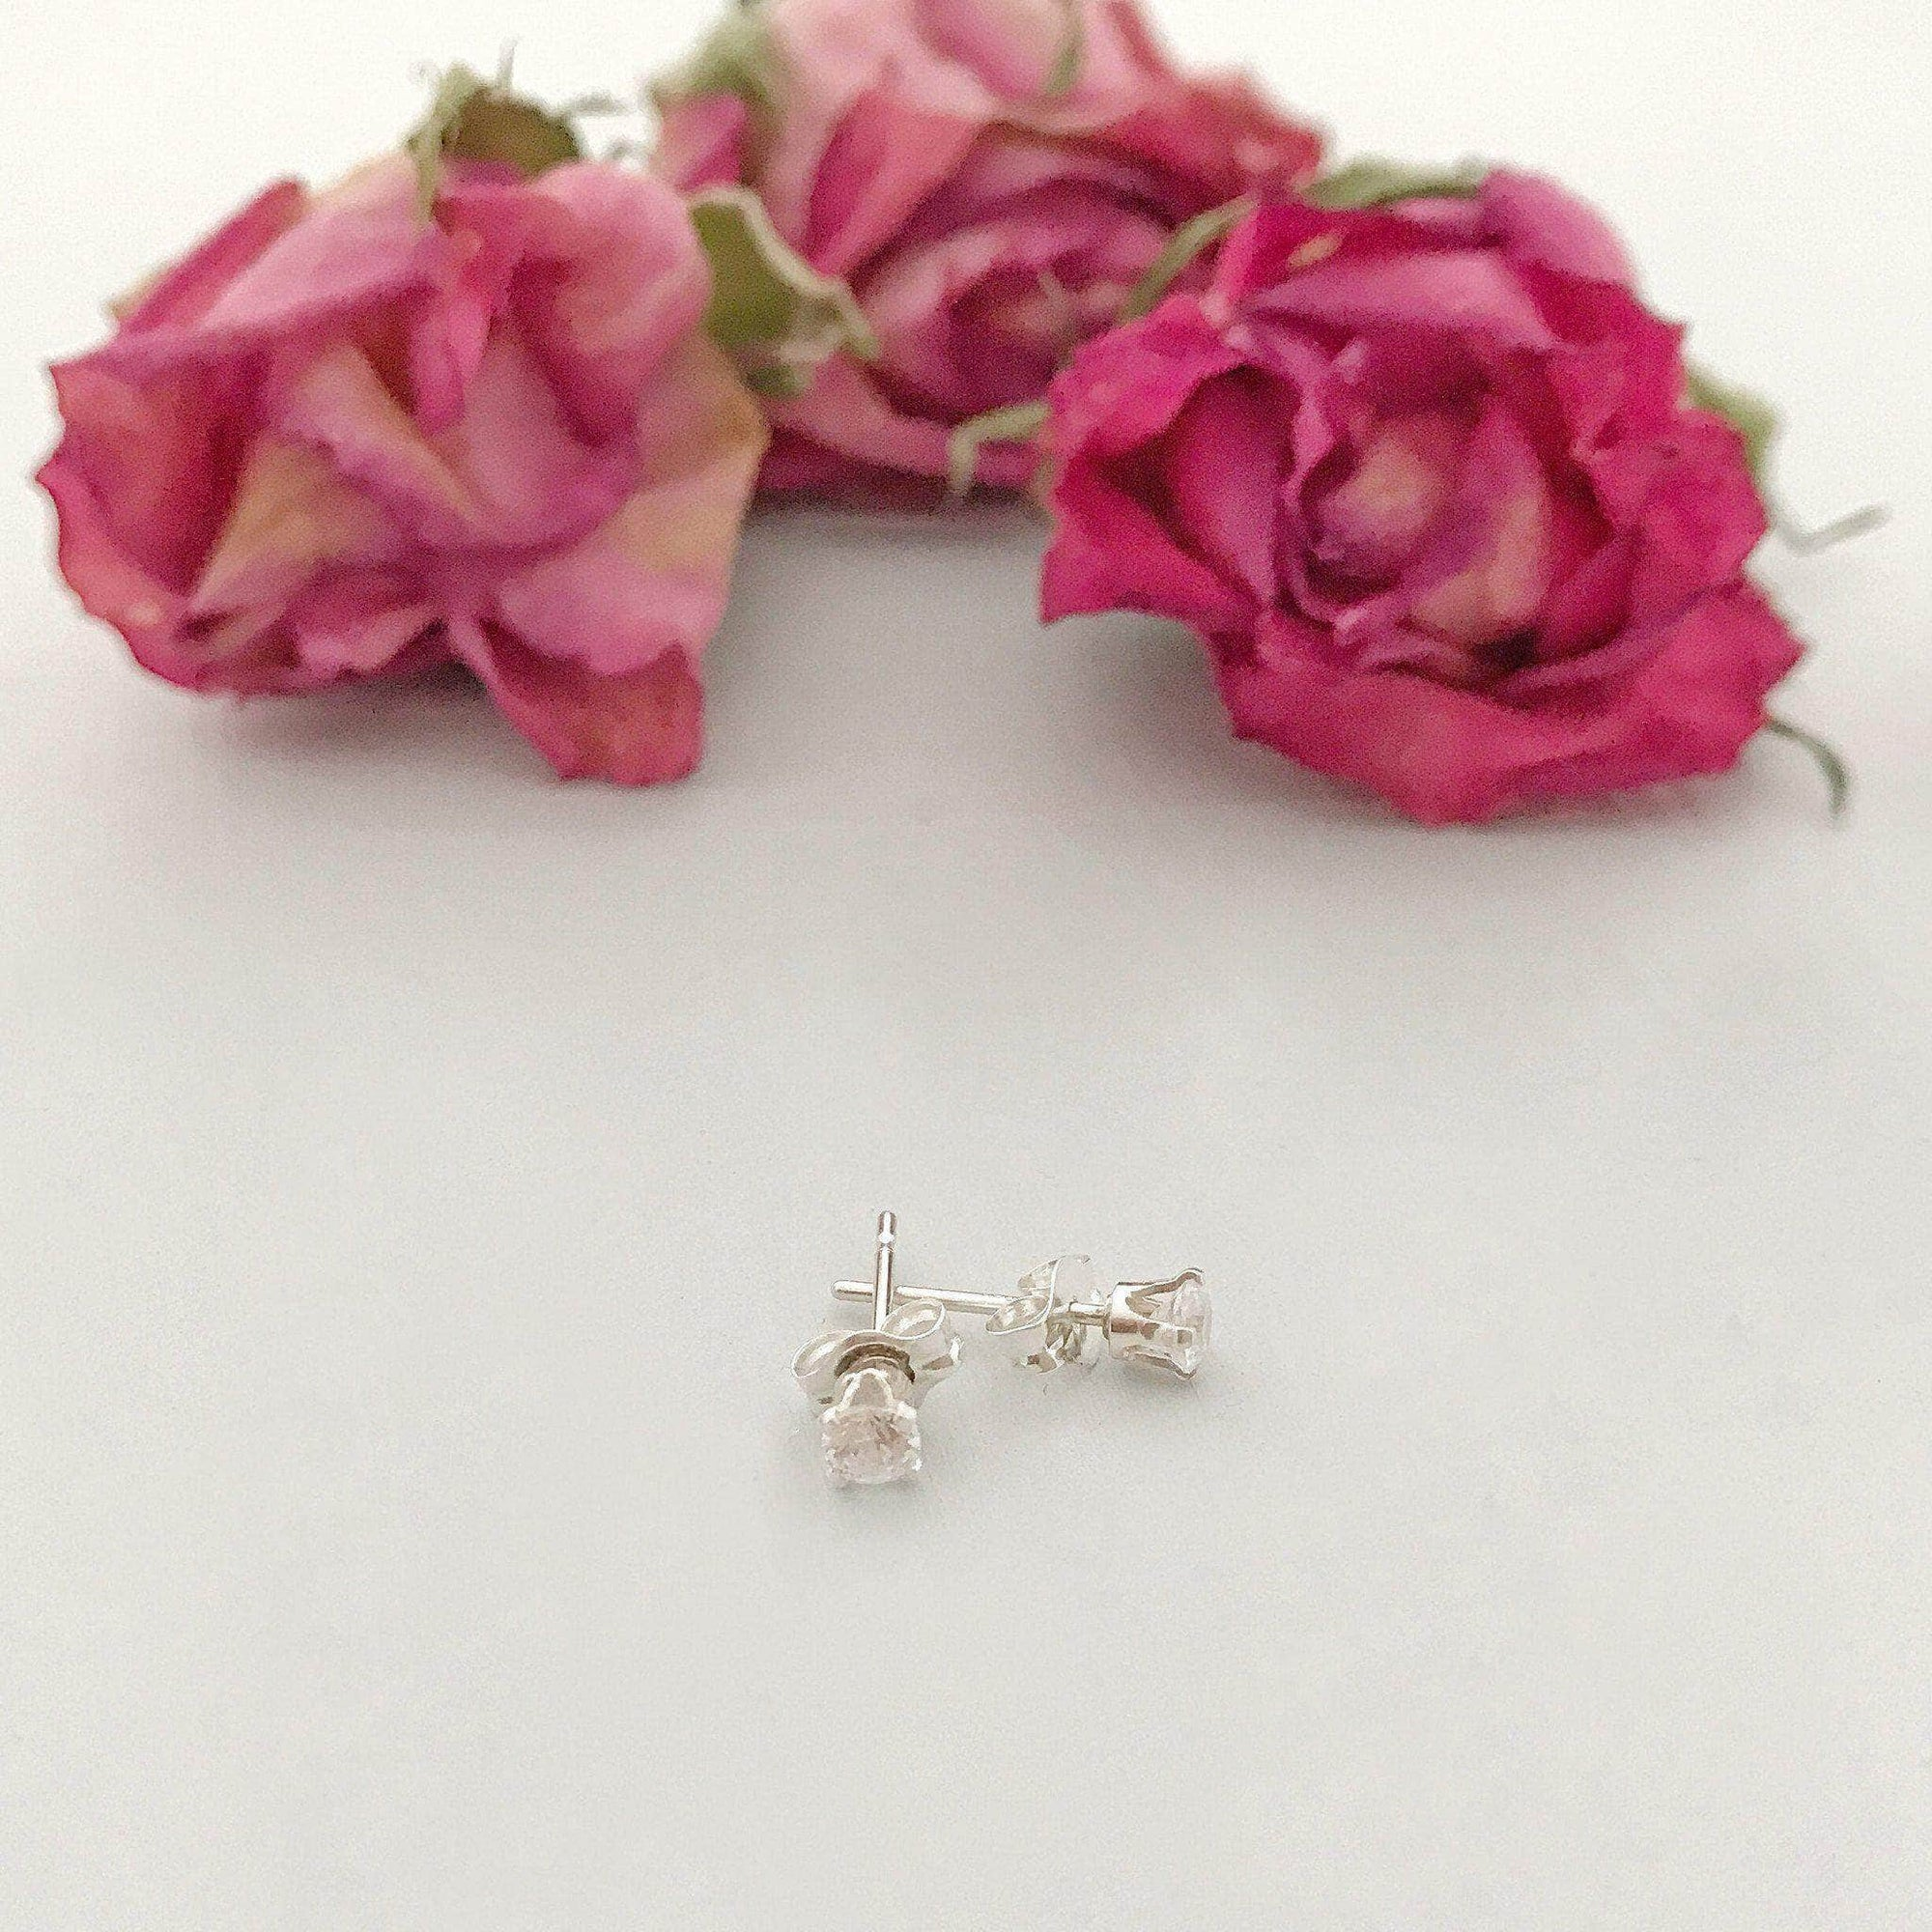 Wedding Earring Silver Crystal stud wedding earrings - 'Ida'